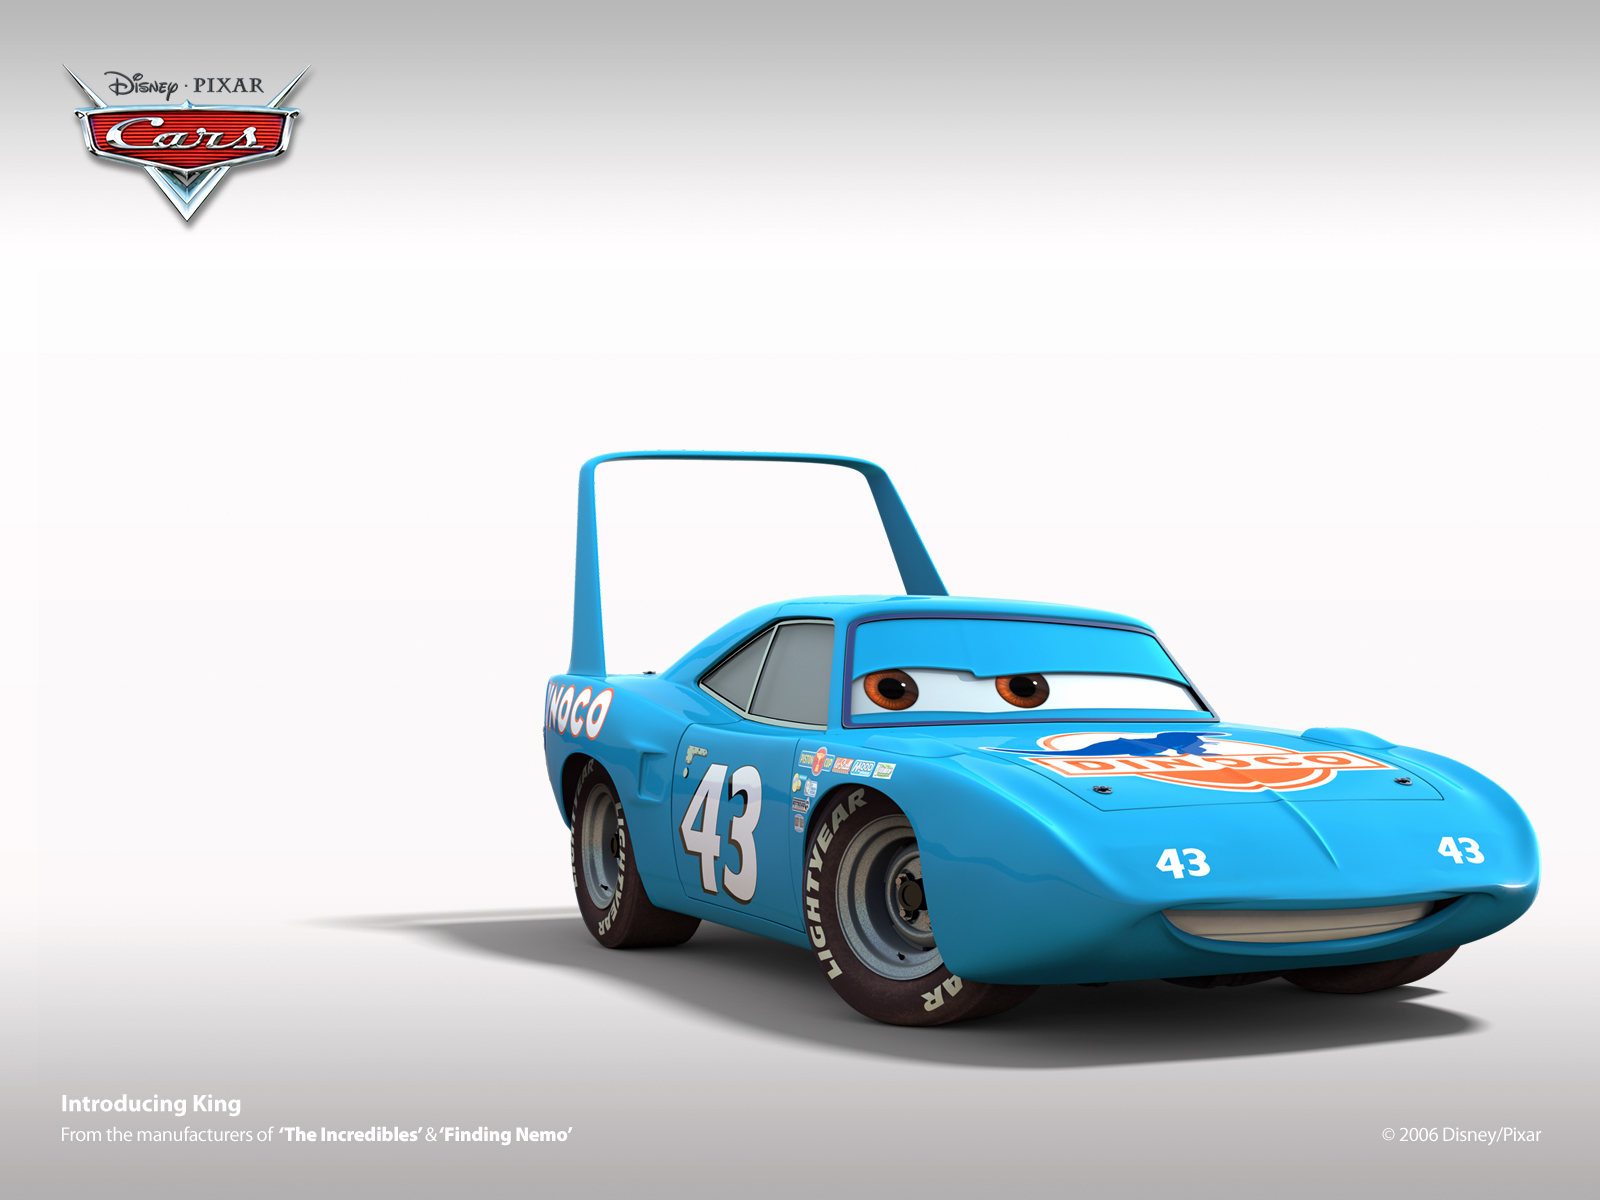 cars disney pixar - photo #15